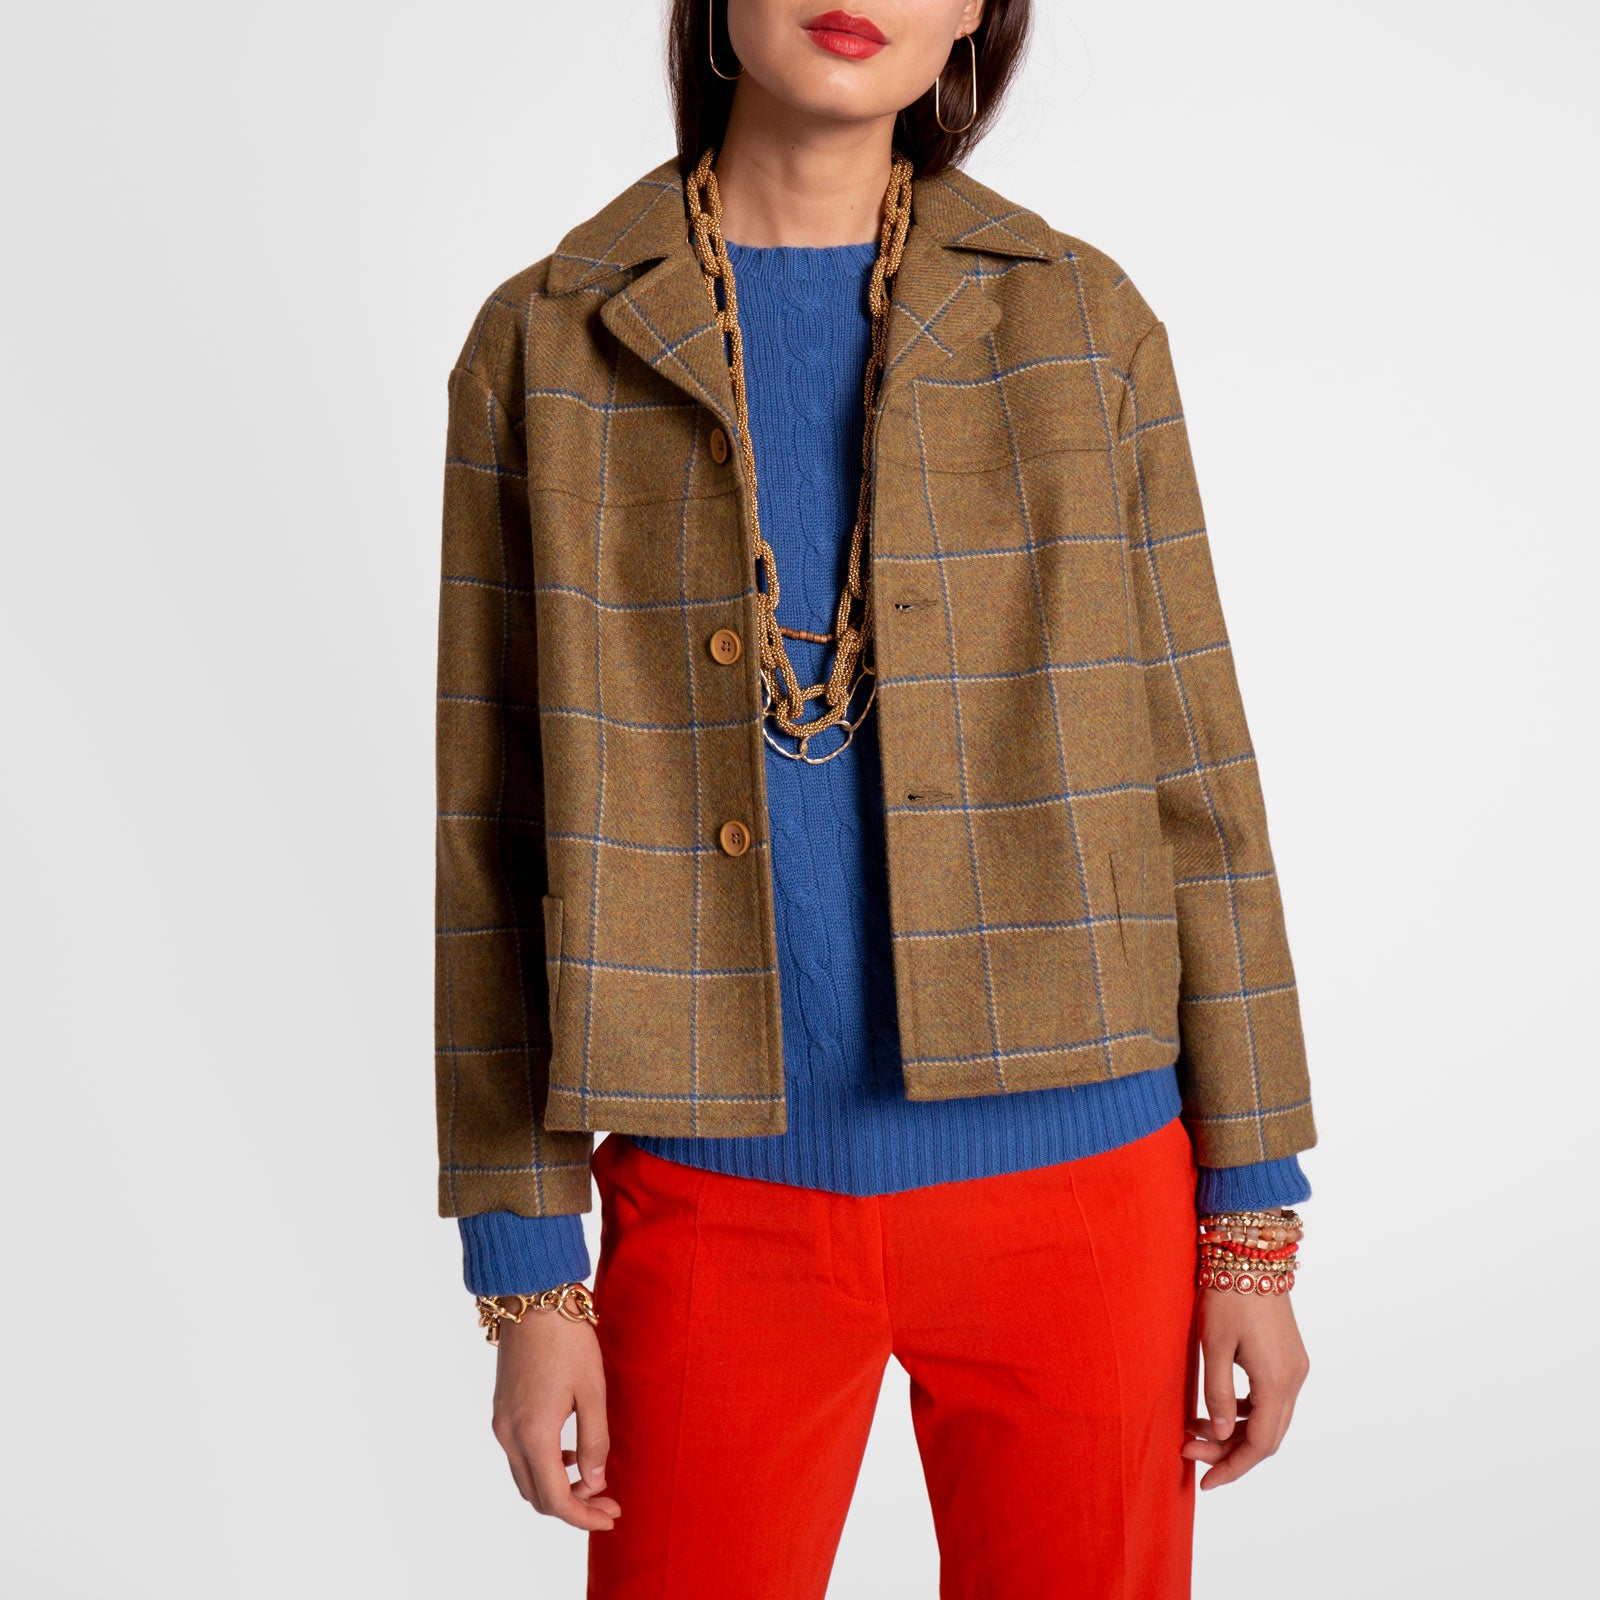 Maia Short Swing Coat Wool Plaid Olive Navy - Frances Valentine